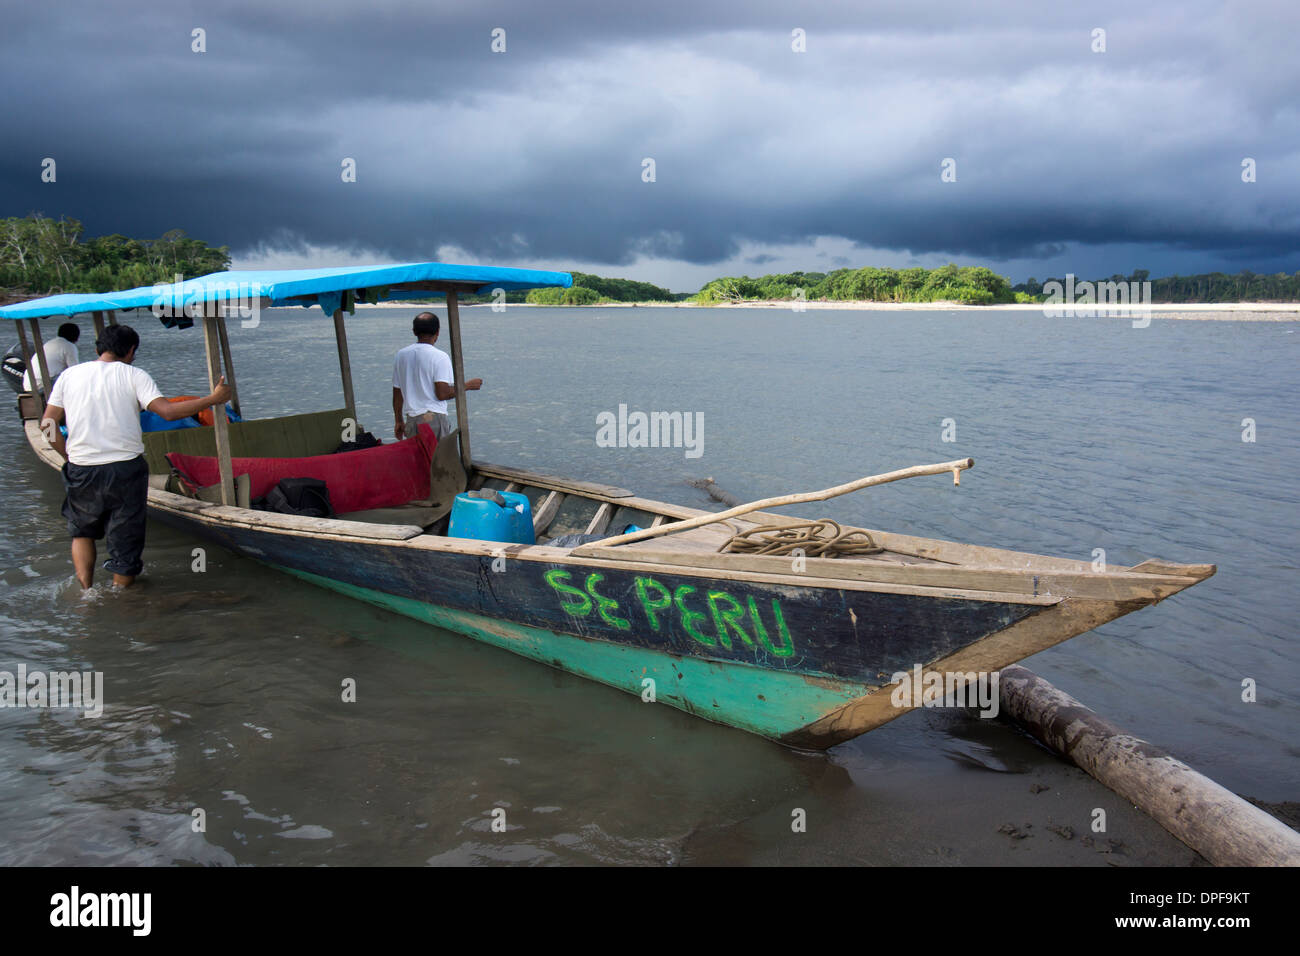 Dark clouds and tourist boat on the Manu river, Manu National Park, UNESCO World Heritage Site, Peru, South America - Stock Image